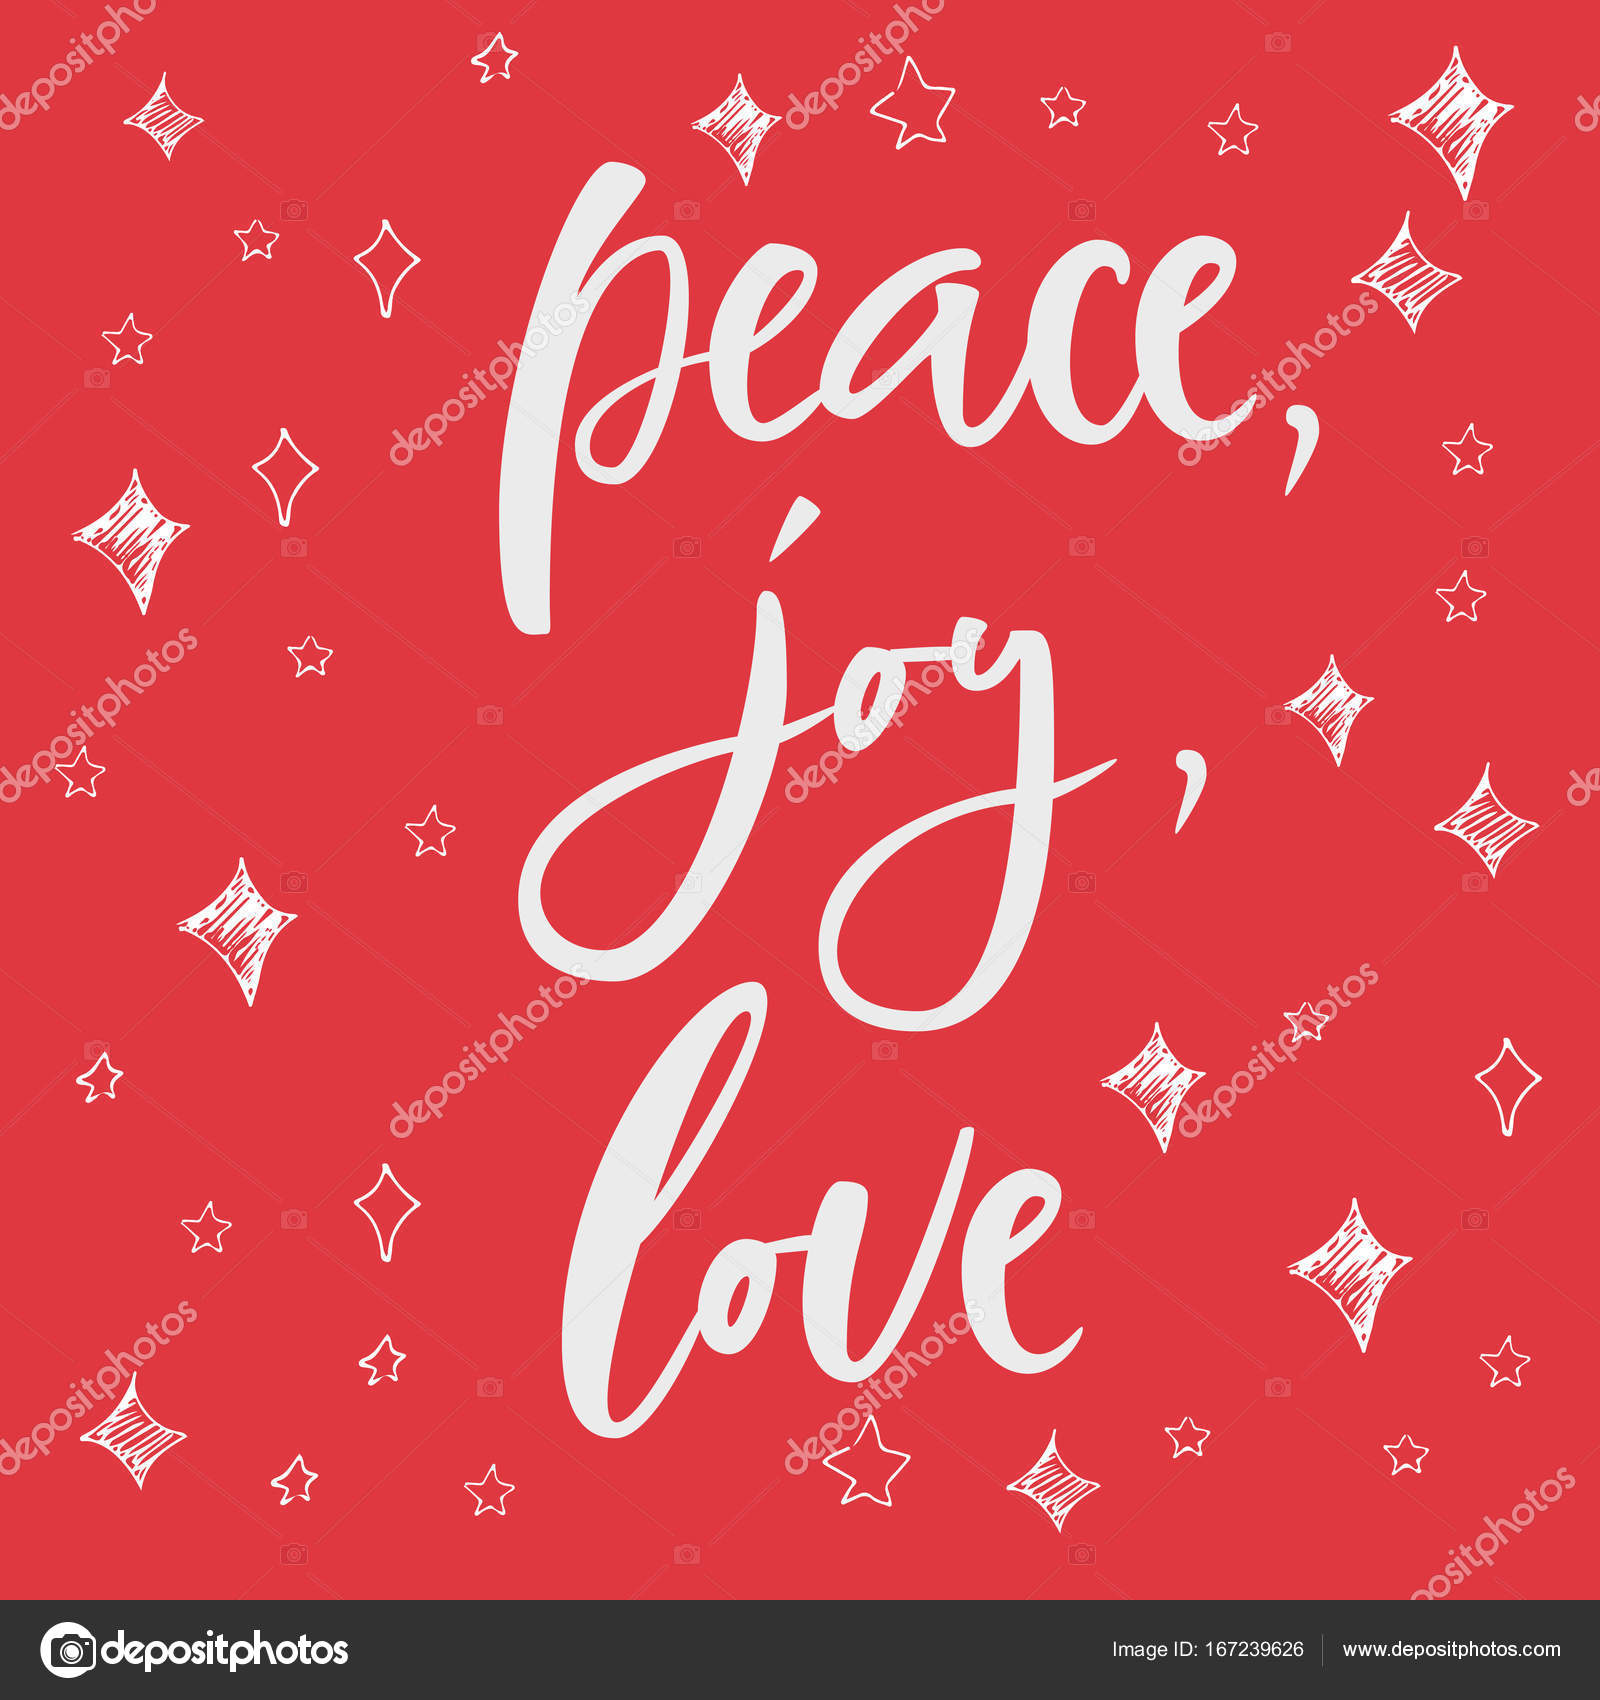 Pease Joy Love Greeting Card On Christmas Background Hand